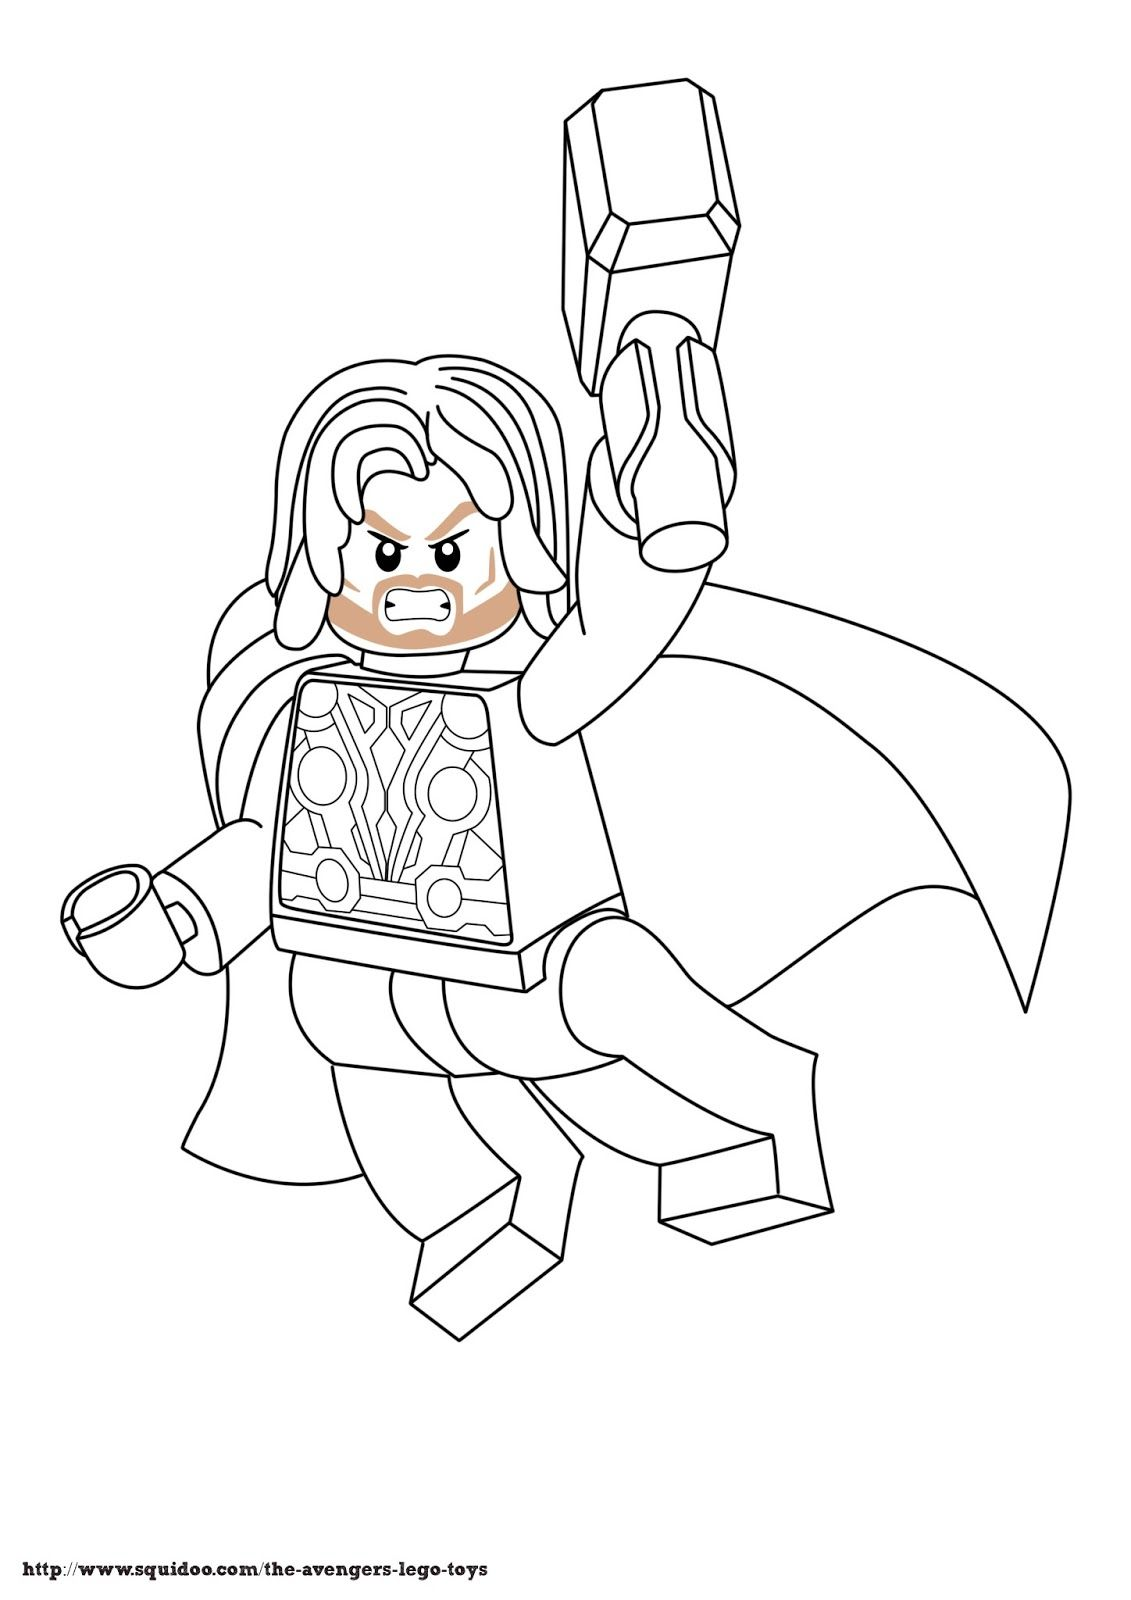 Ausmalbilder Hulk Lego: Lego Minifigure Colouring Pages (page 2)